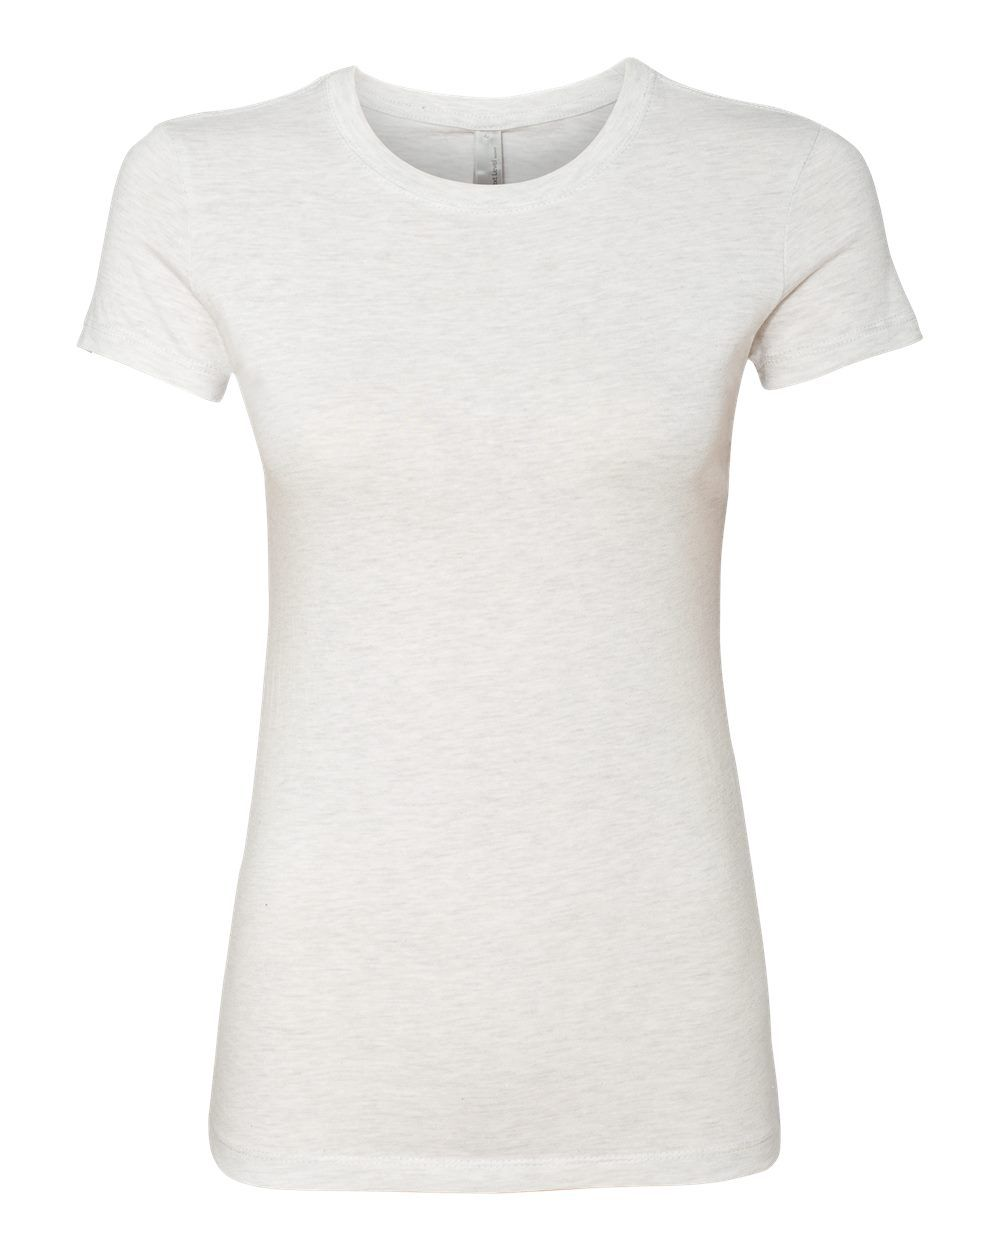 Next Level 3300L Ladies' The Perfect Tee Wholesale and